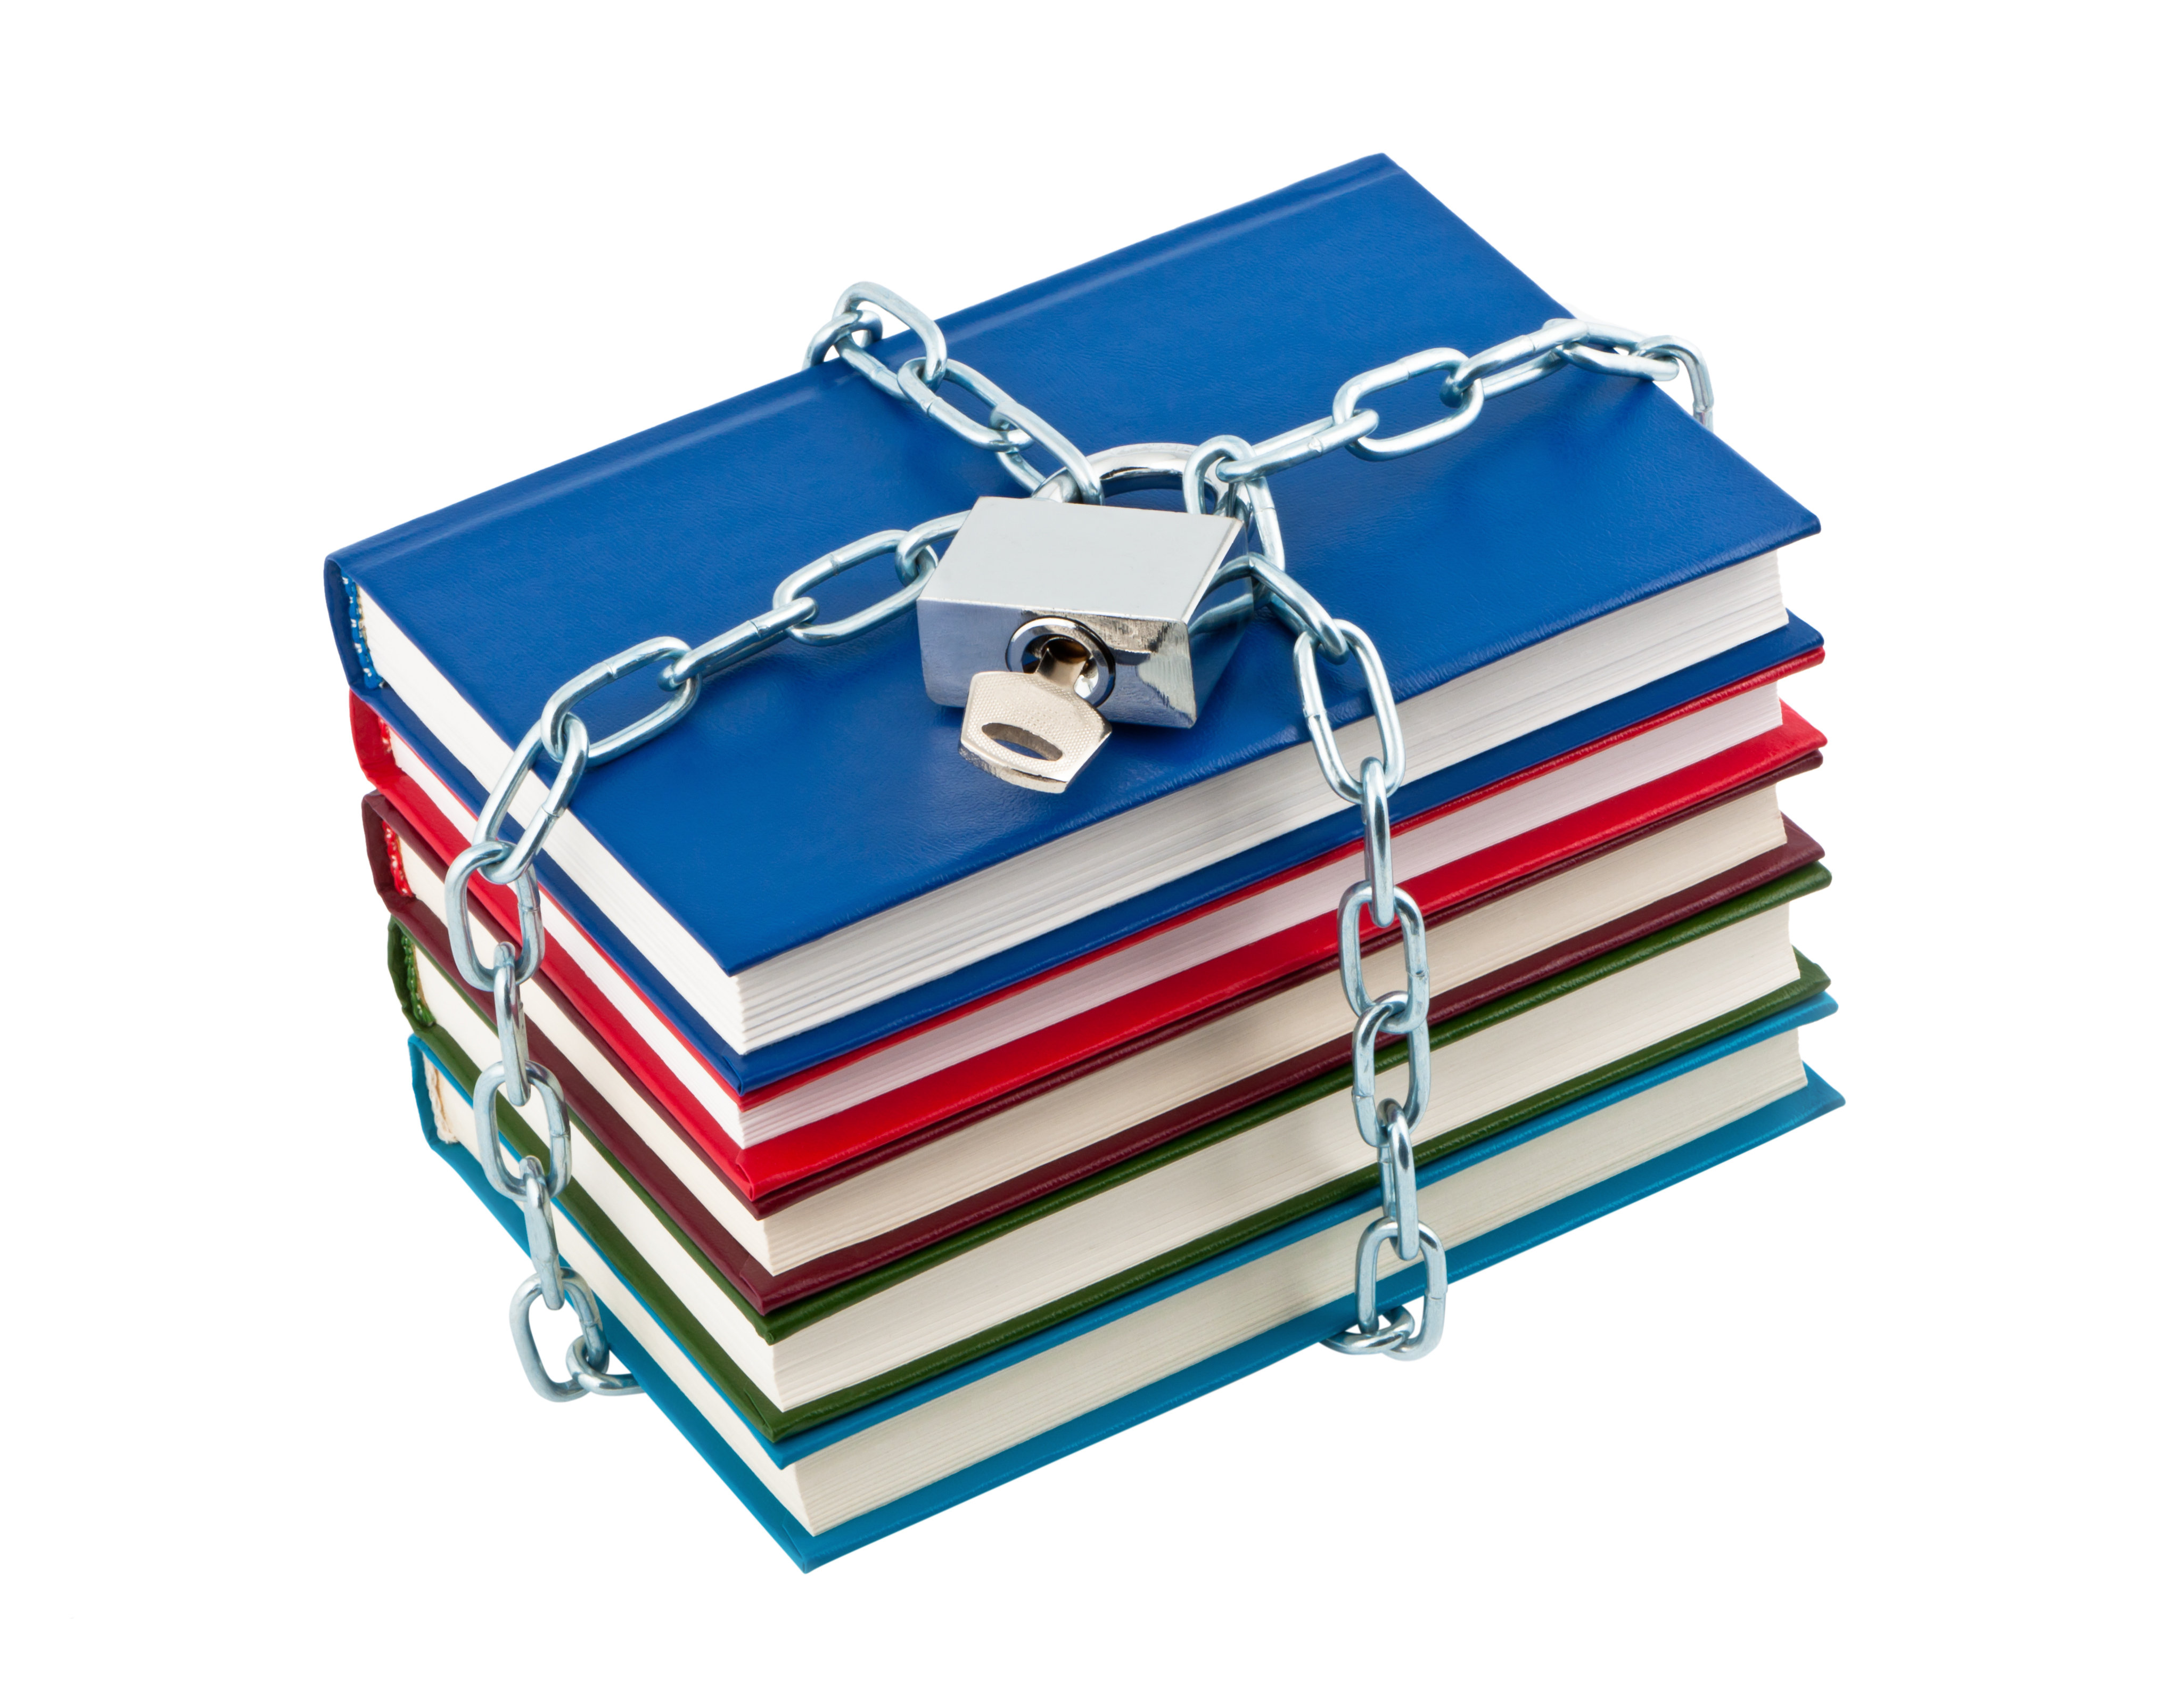 banned books in chains